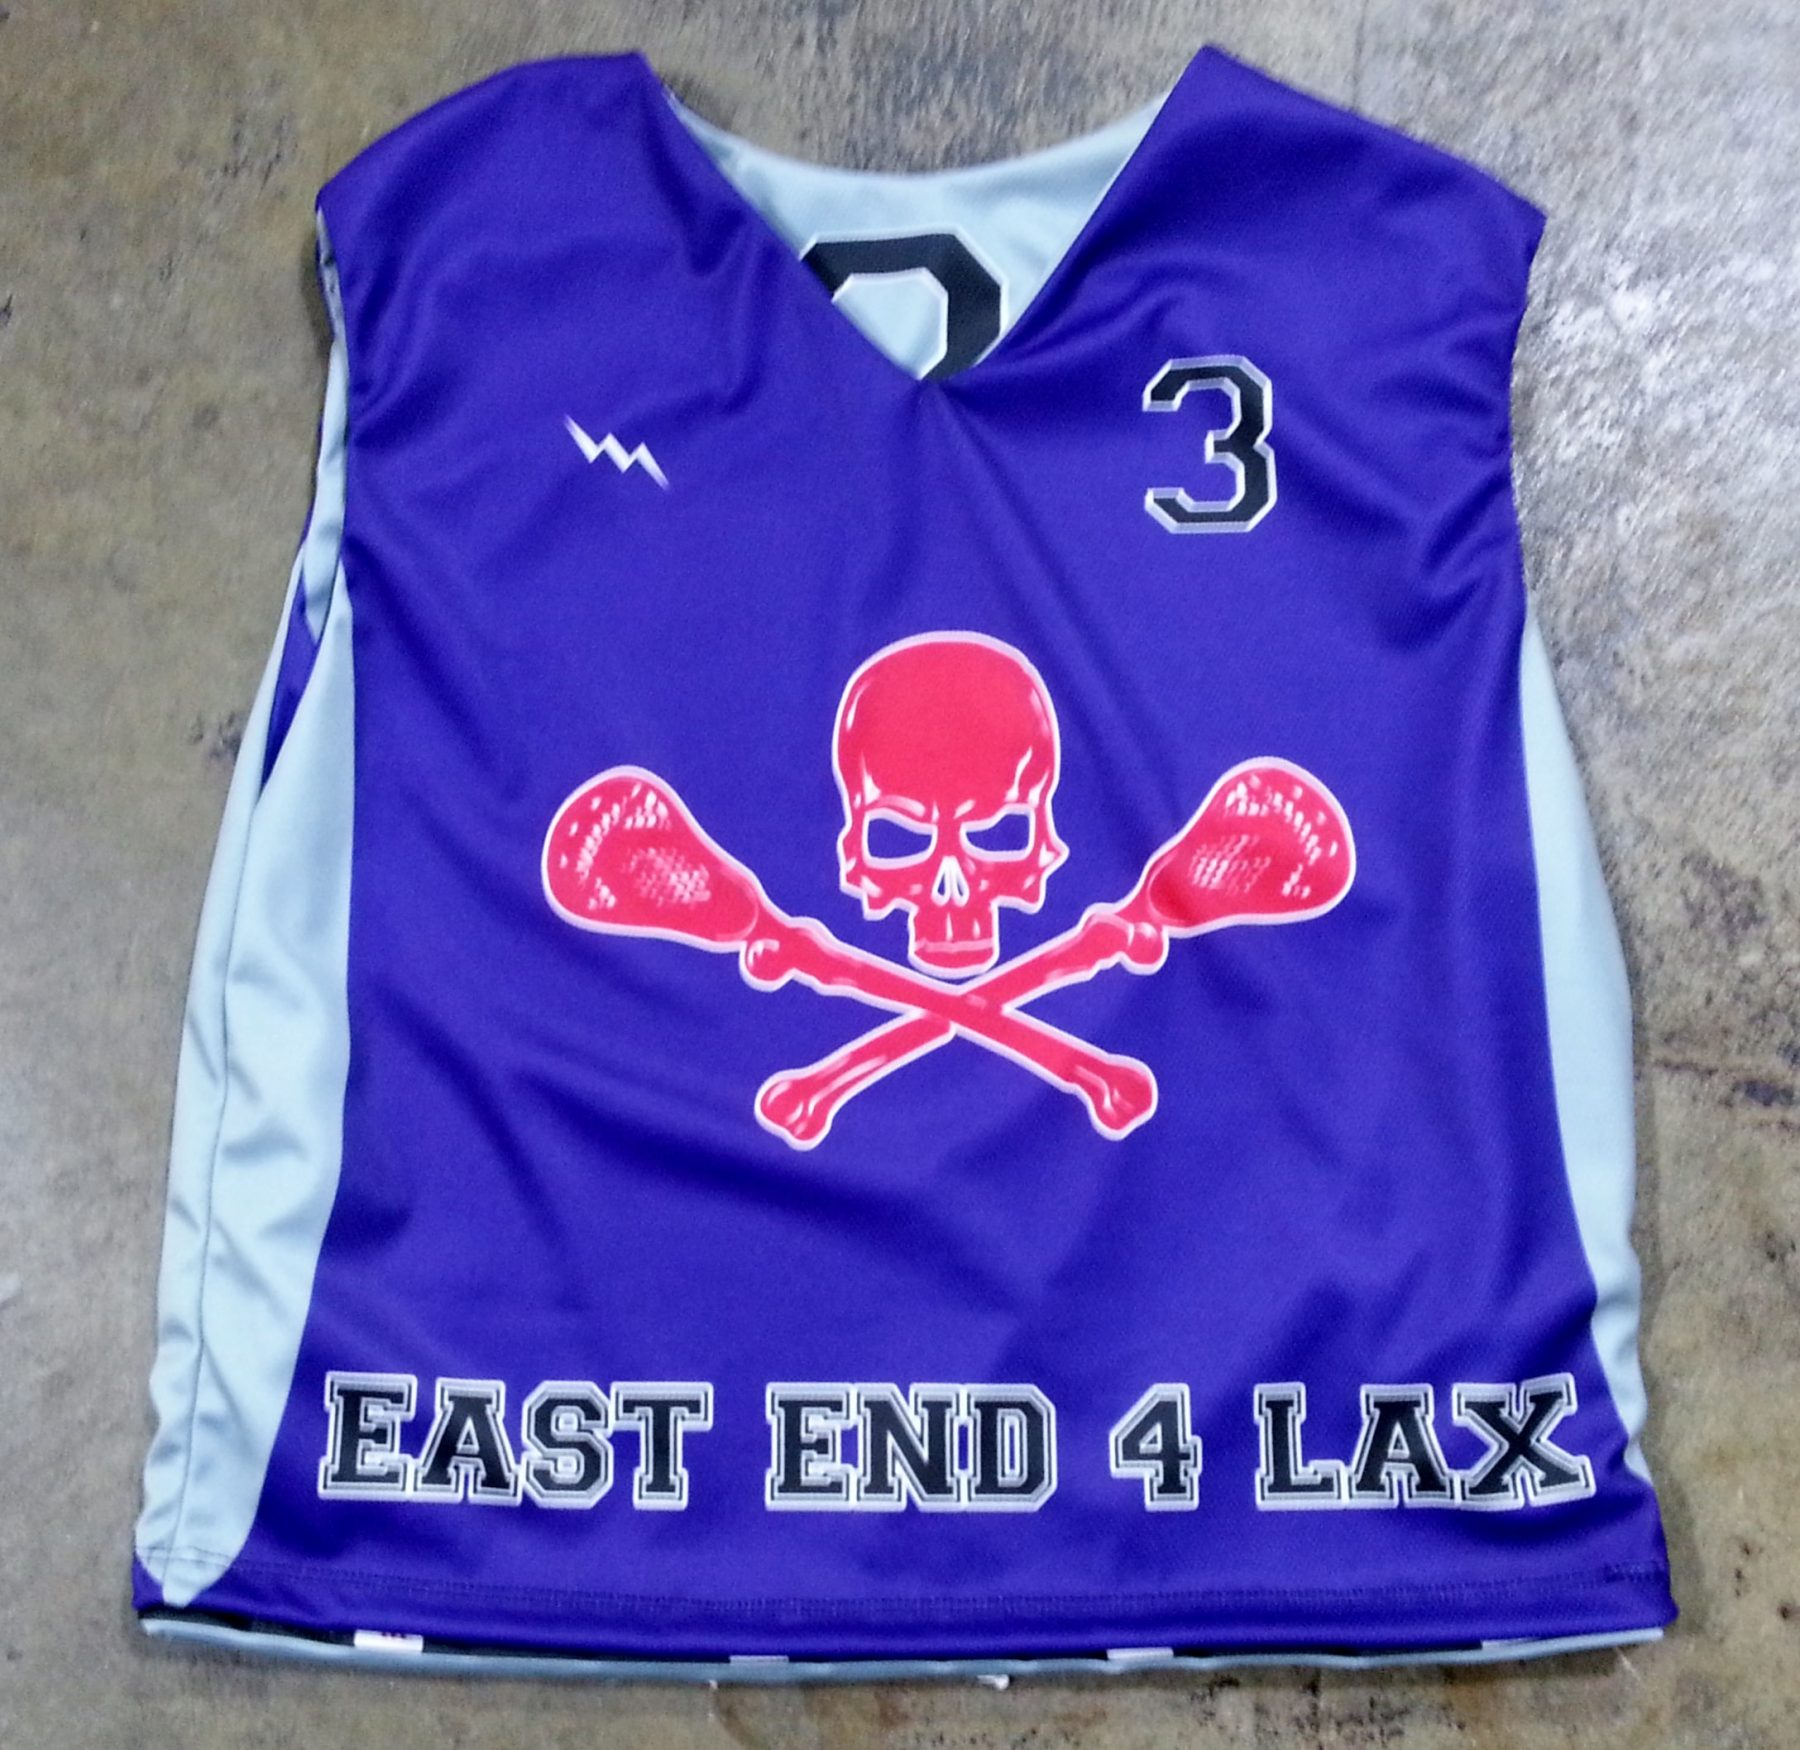 lacrosse uniforms for boys